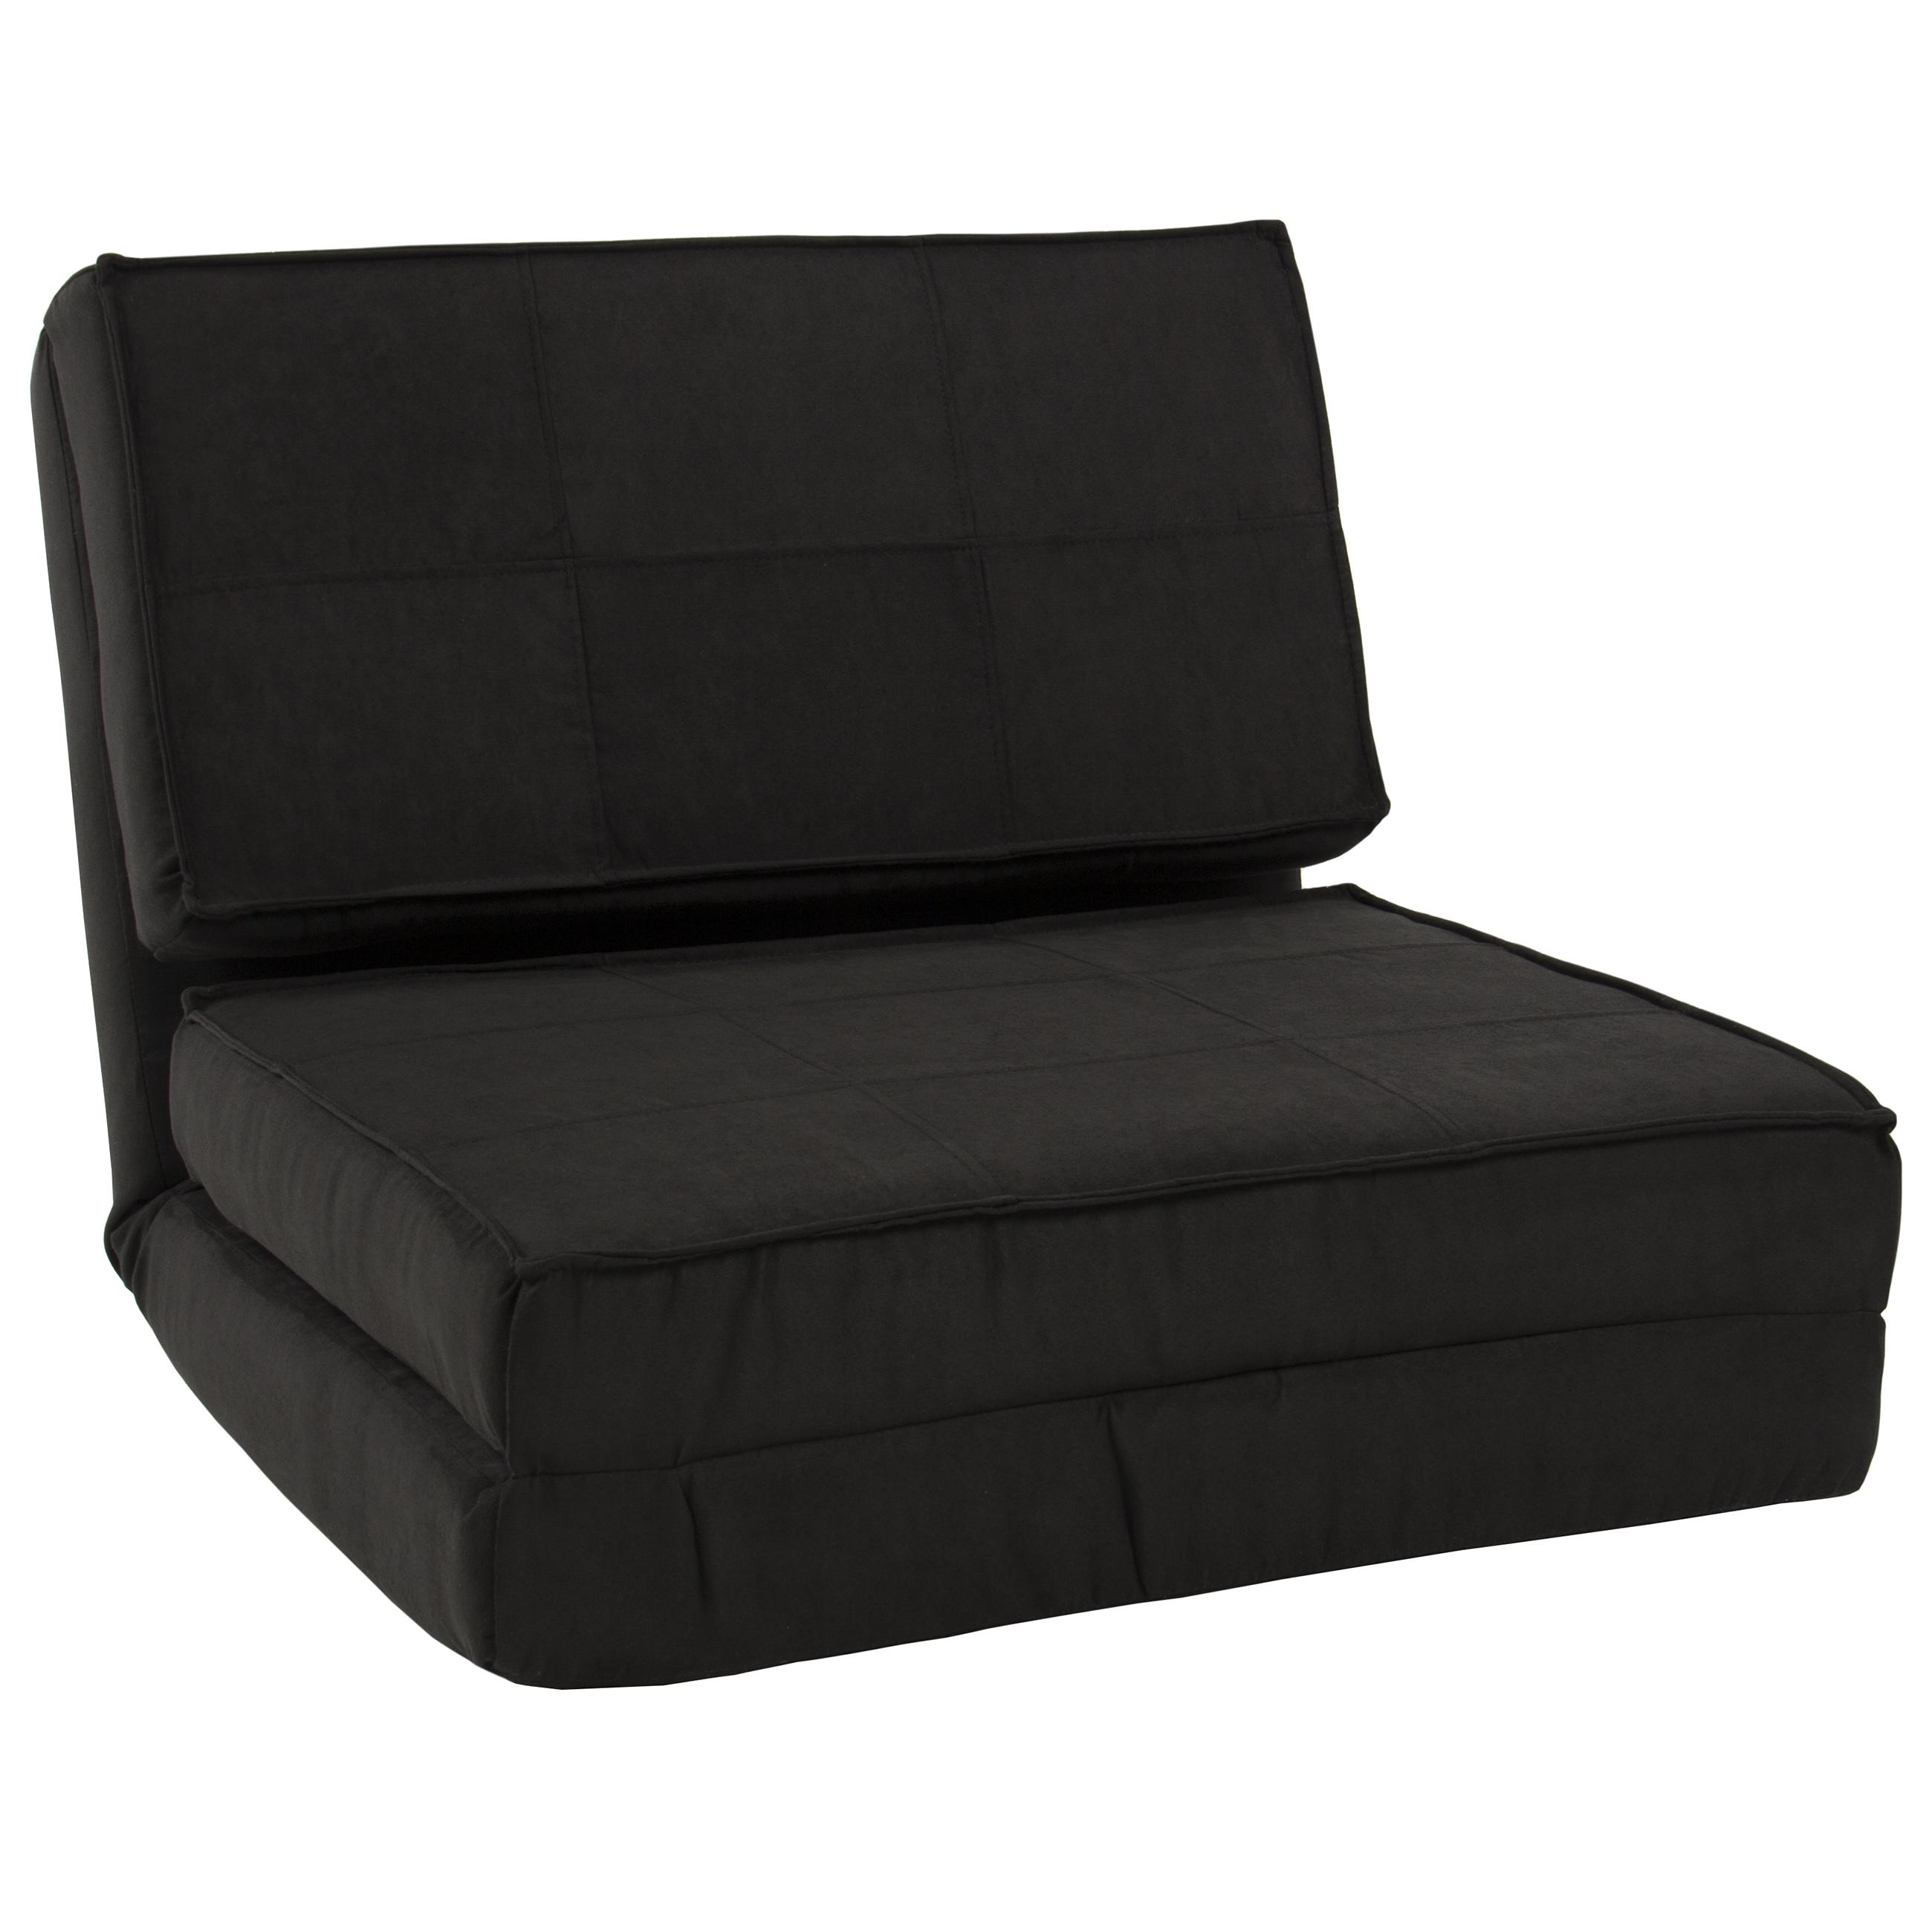 Best Choice Products Convertible Sleeper Chair Bed (Black Regarding Sofa Beds Chairs (View 10 of 20)